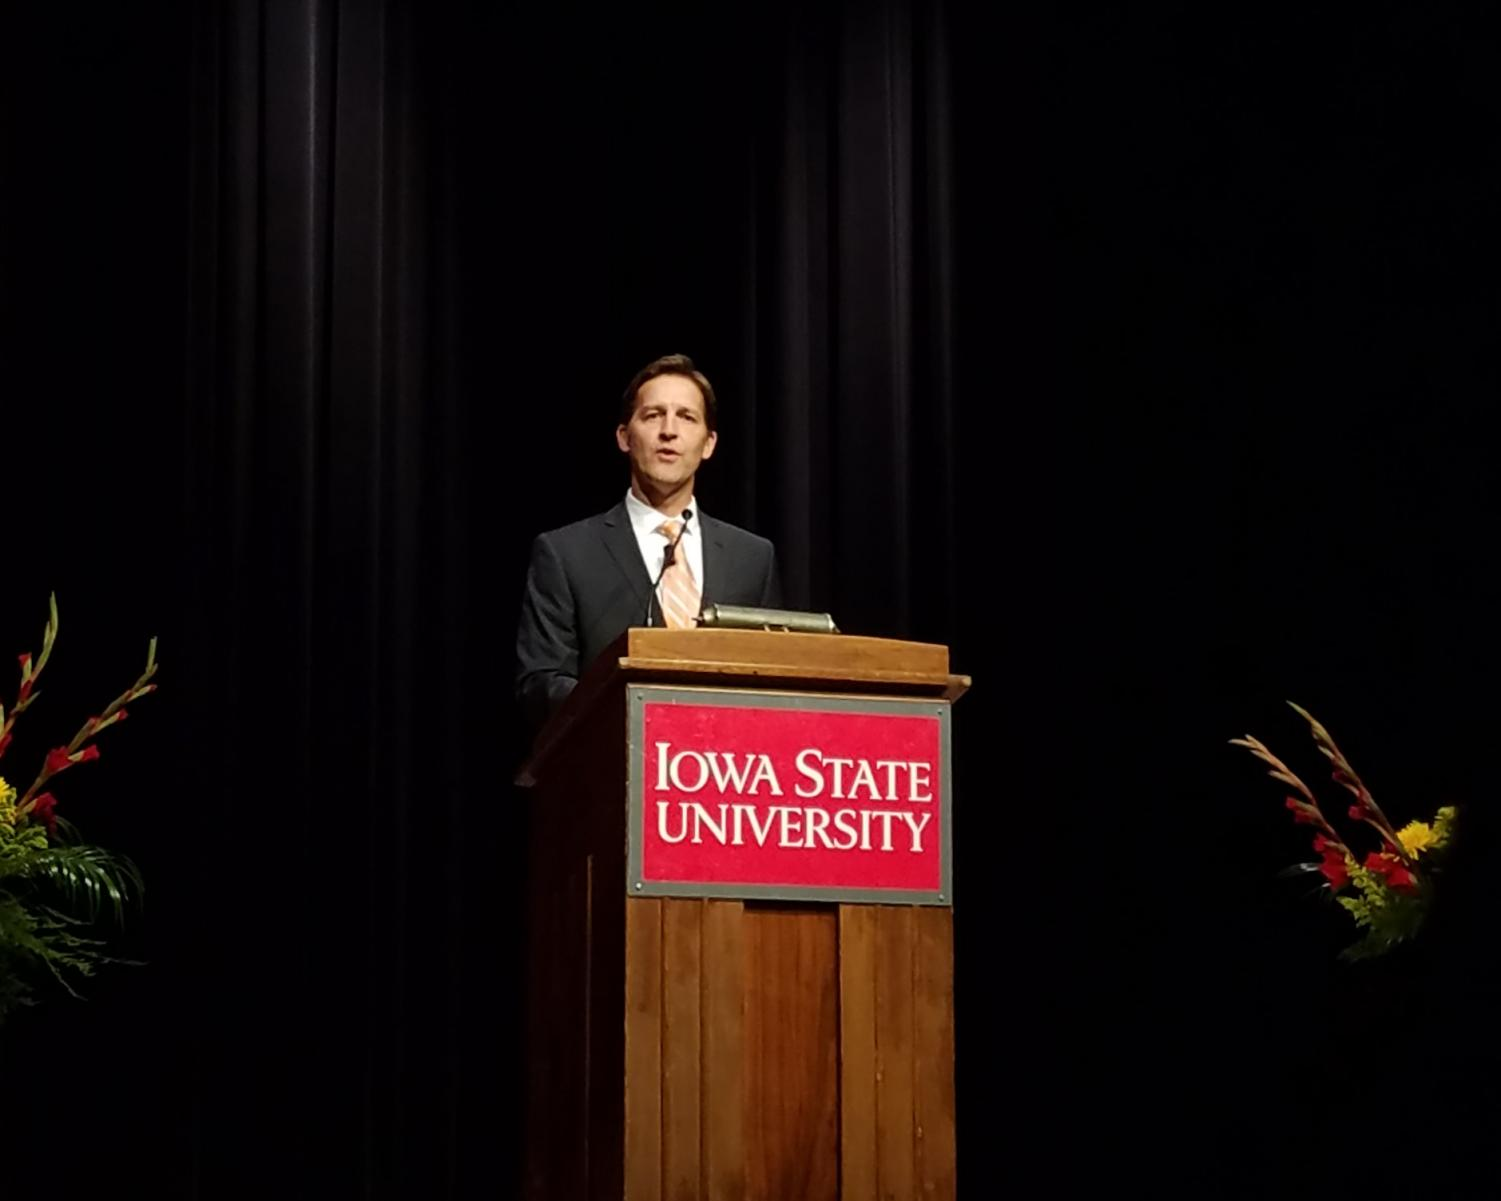 Ben Sasse speaks at the great hall in the Iowa State memorial union.